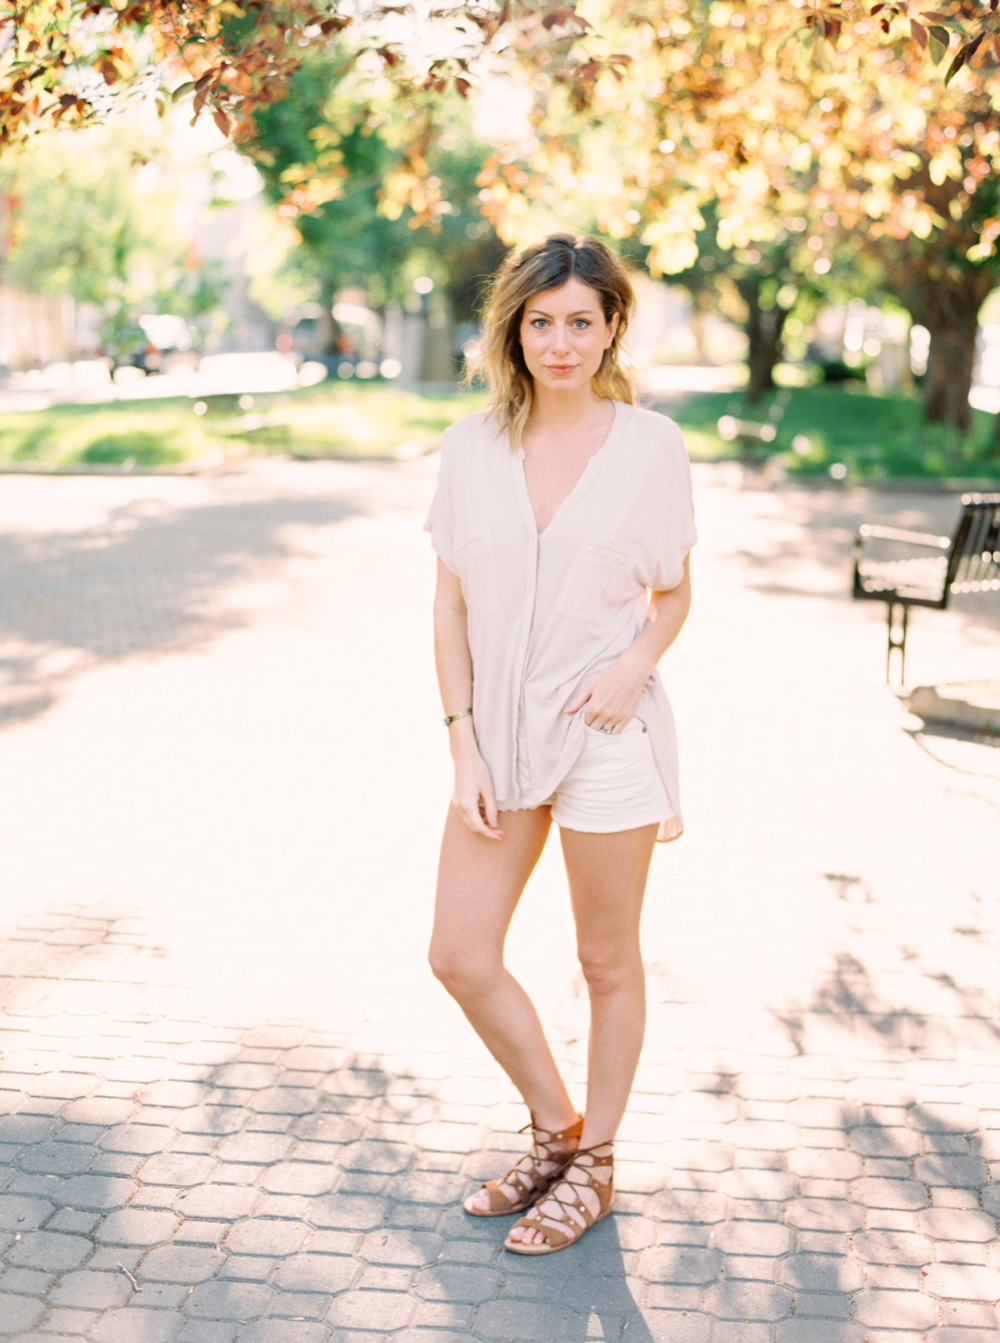 Brittany Messner Life Set Sail | Calgary Fashion Photographers & Local Influencers